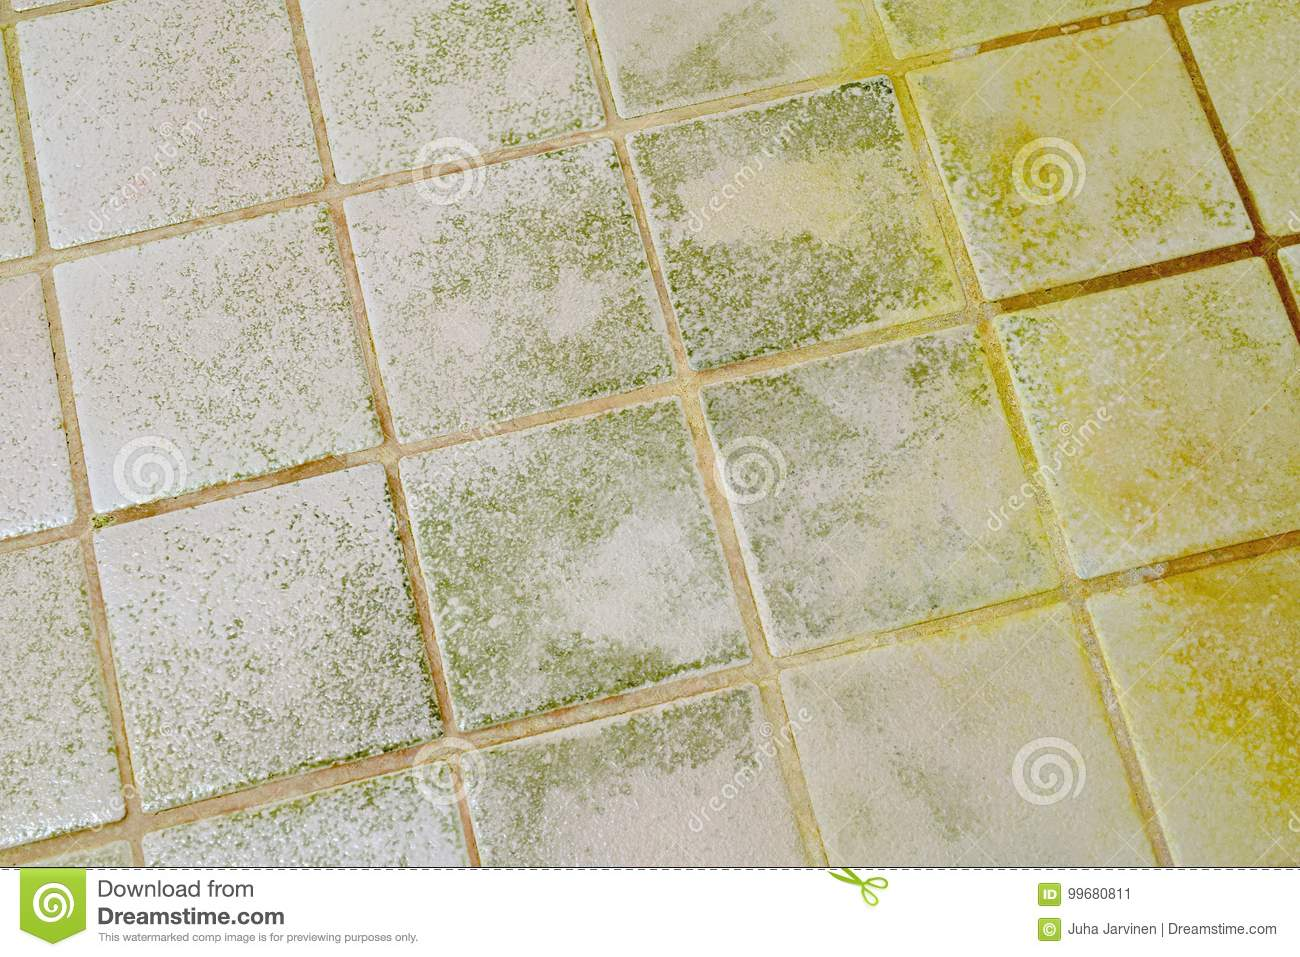 Mold On The Bathroom Tile Floor. Stock Image - Image of messy ...